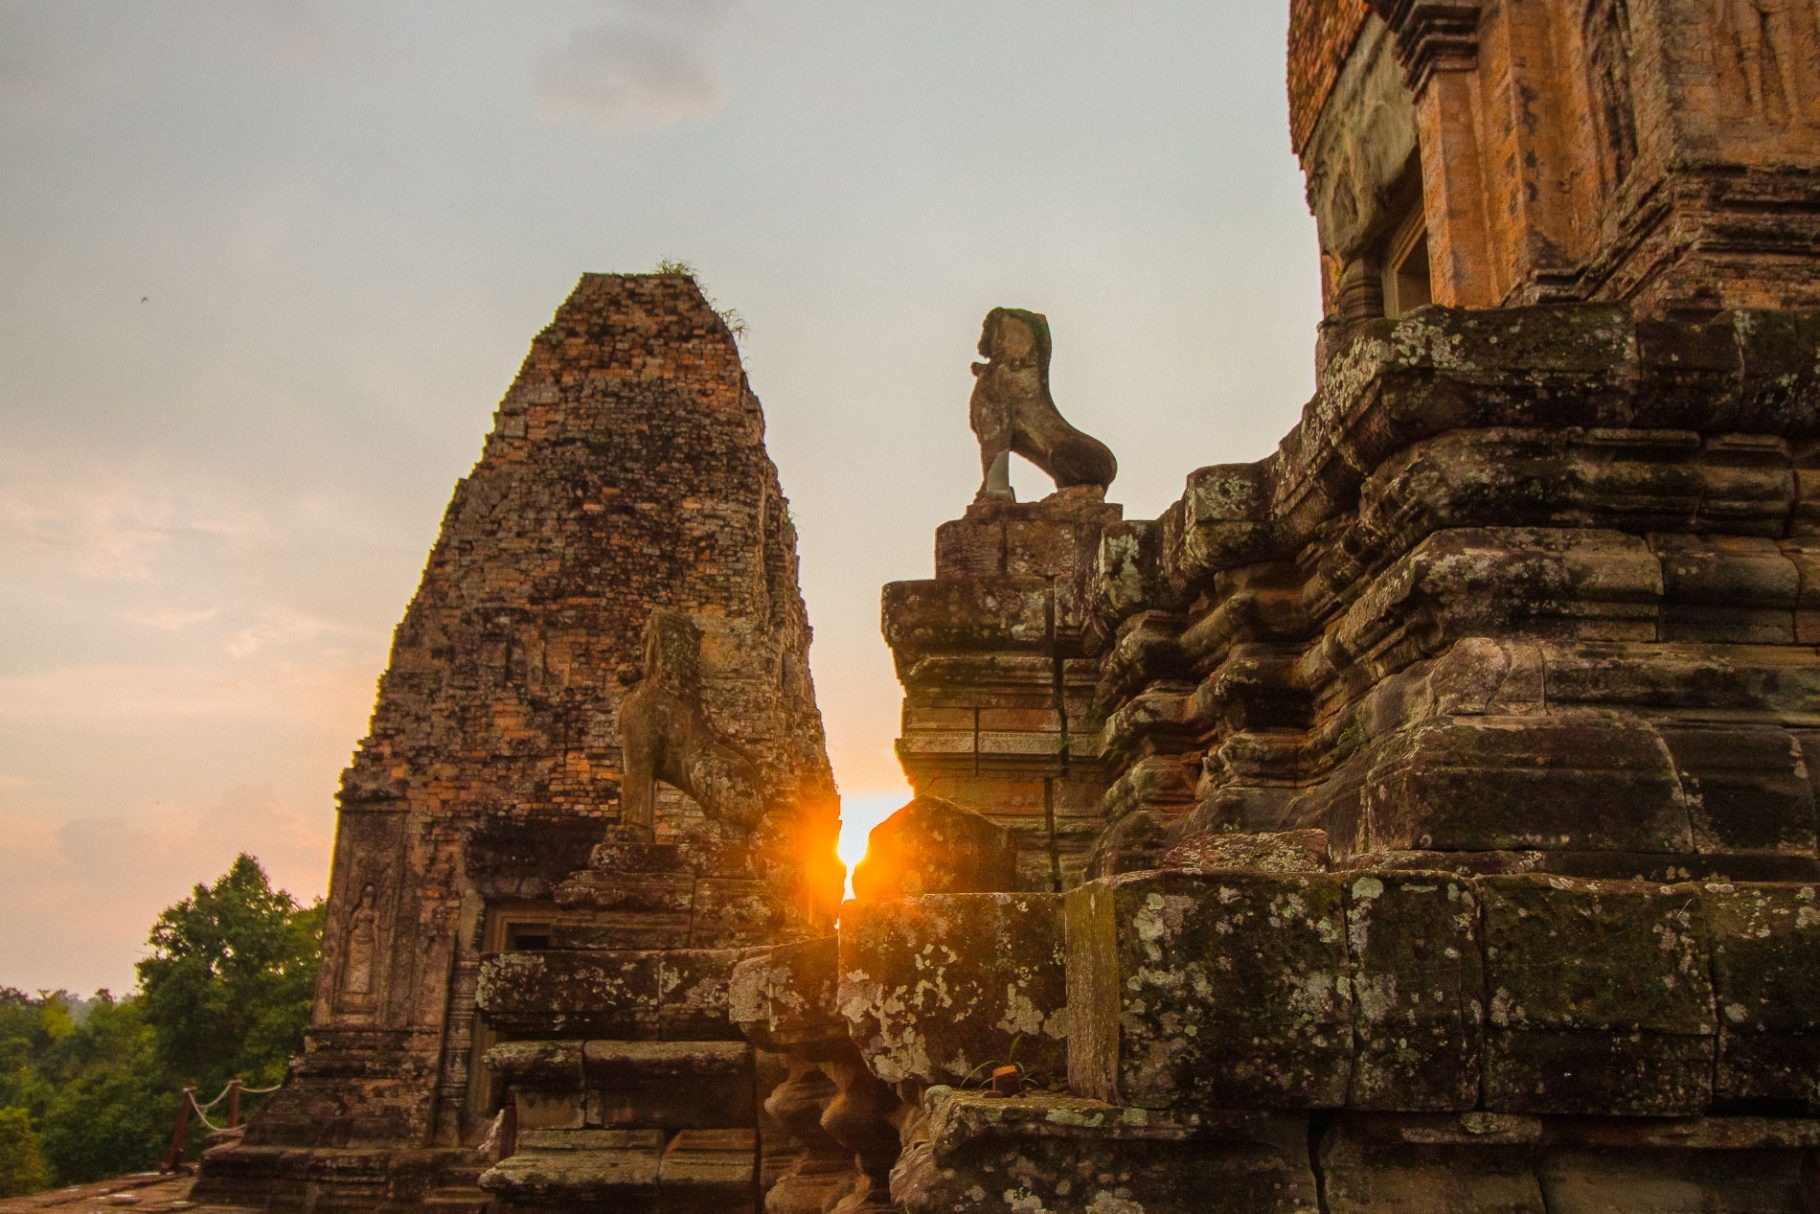 Where to stay in Siem Reap and what you can do around there